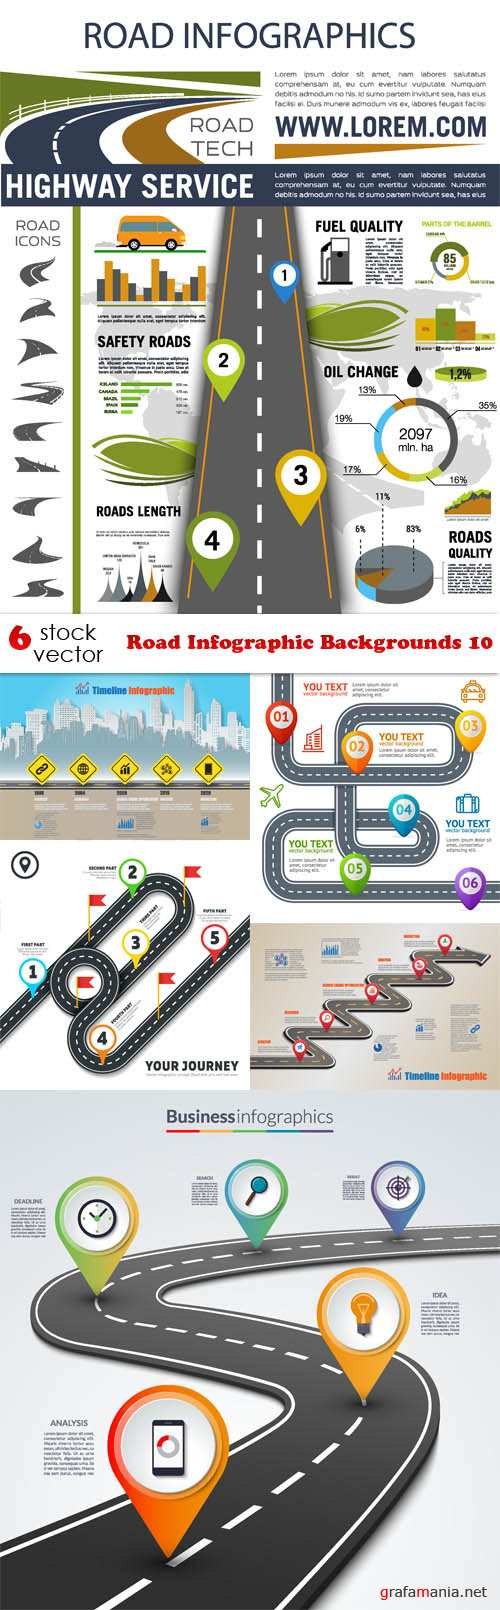 Vectors - Road Infographic Backgrounds 10